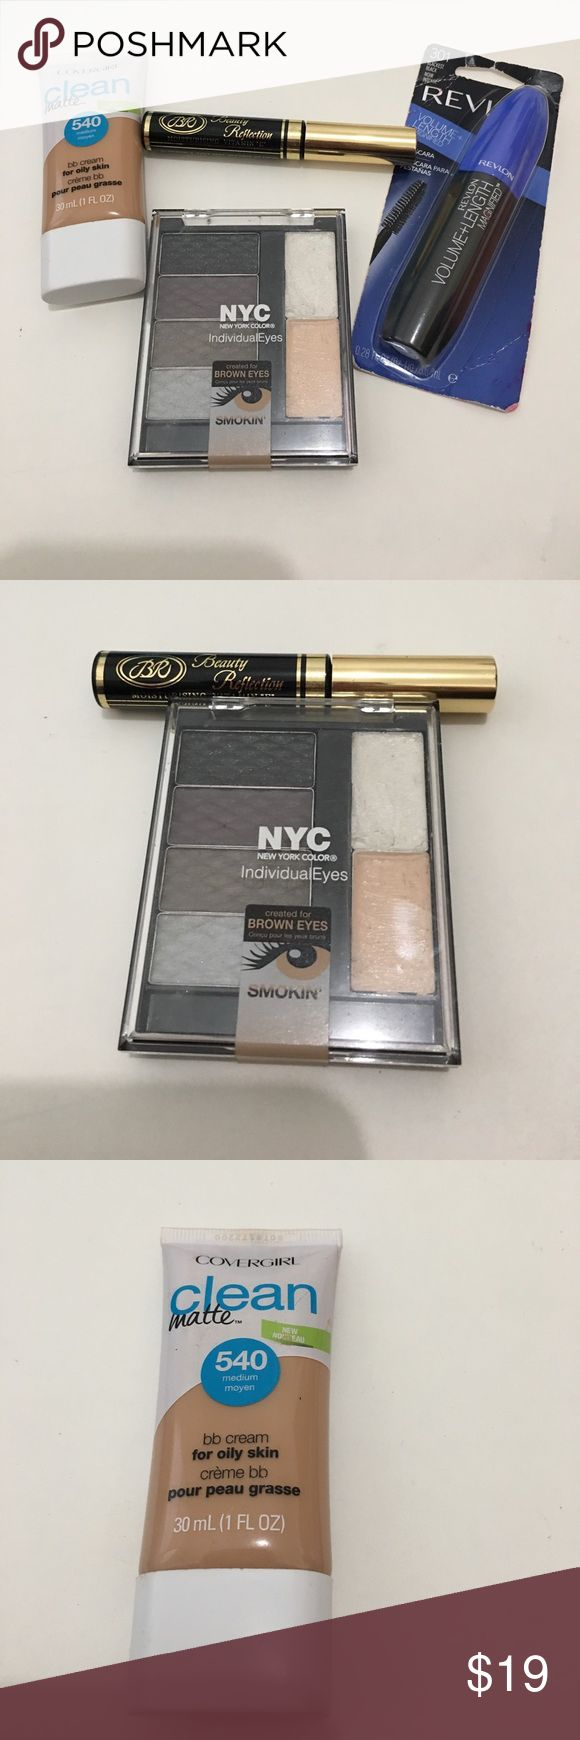 New makeup bundle, revlon, NYC, covergirl Makeup bundle. NEW: covergirl clean matte B.B. Cream in 540 Medium, revlon volume + length mascara in blackest black, beauty reflection black liquid eyeliner. SWATCHED: NYC eyeshadow palette. If need any pictures  please let me know, I'll be glad to do it.   🛫We ship the same or the next day.  🚭Smoke free closet ❌Pet free closet 📦Bundle to save some cash 🗳Make an offer, if it's too low I'll counterfeit. Revlon Makeup Foundation